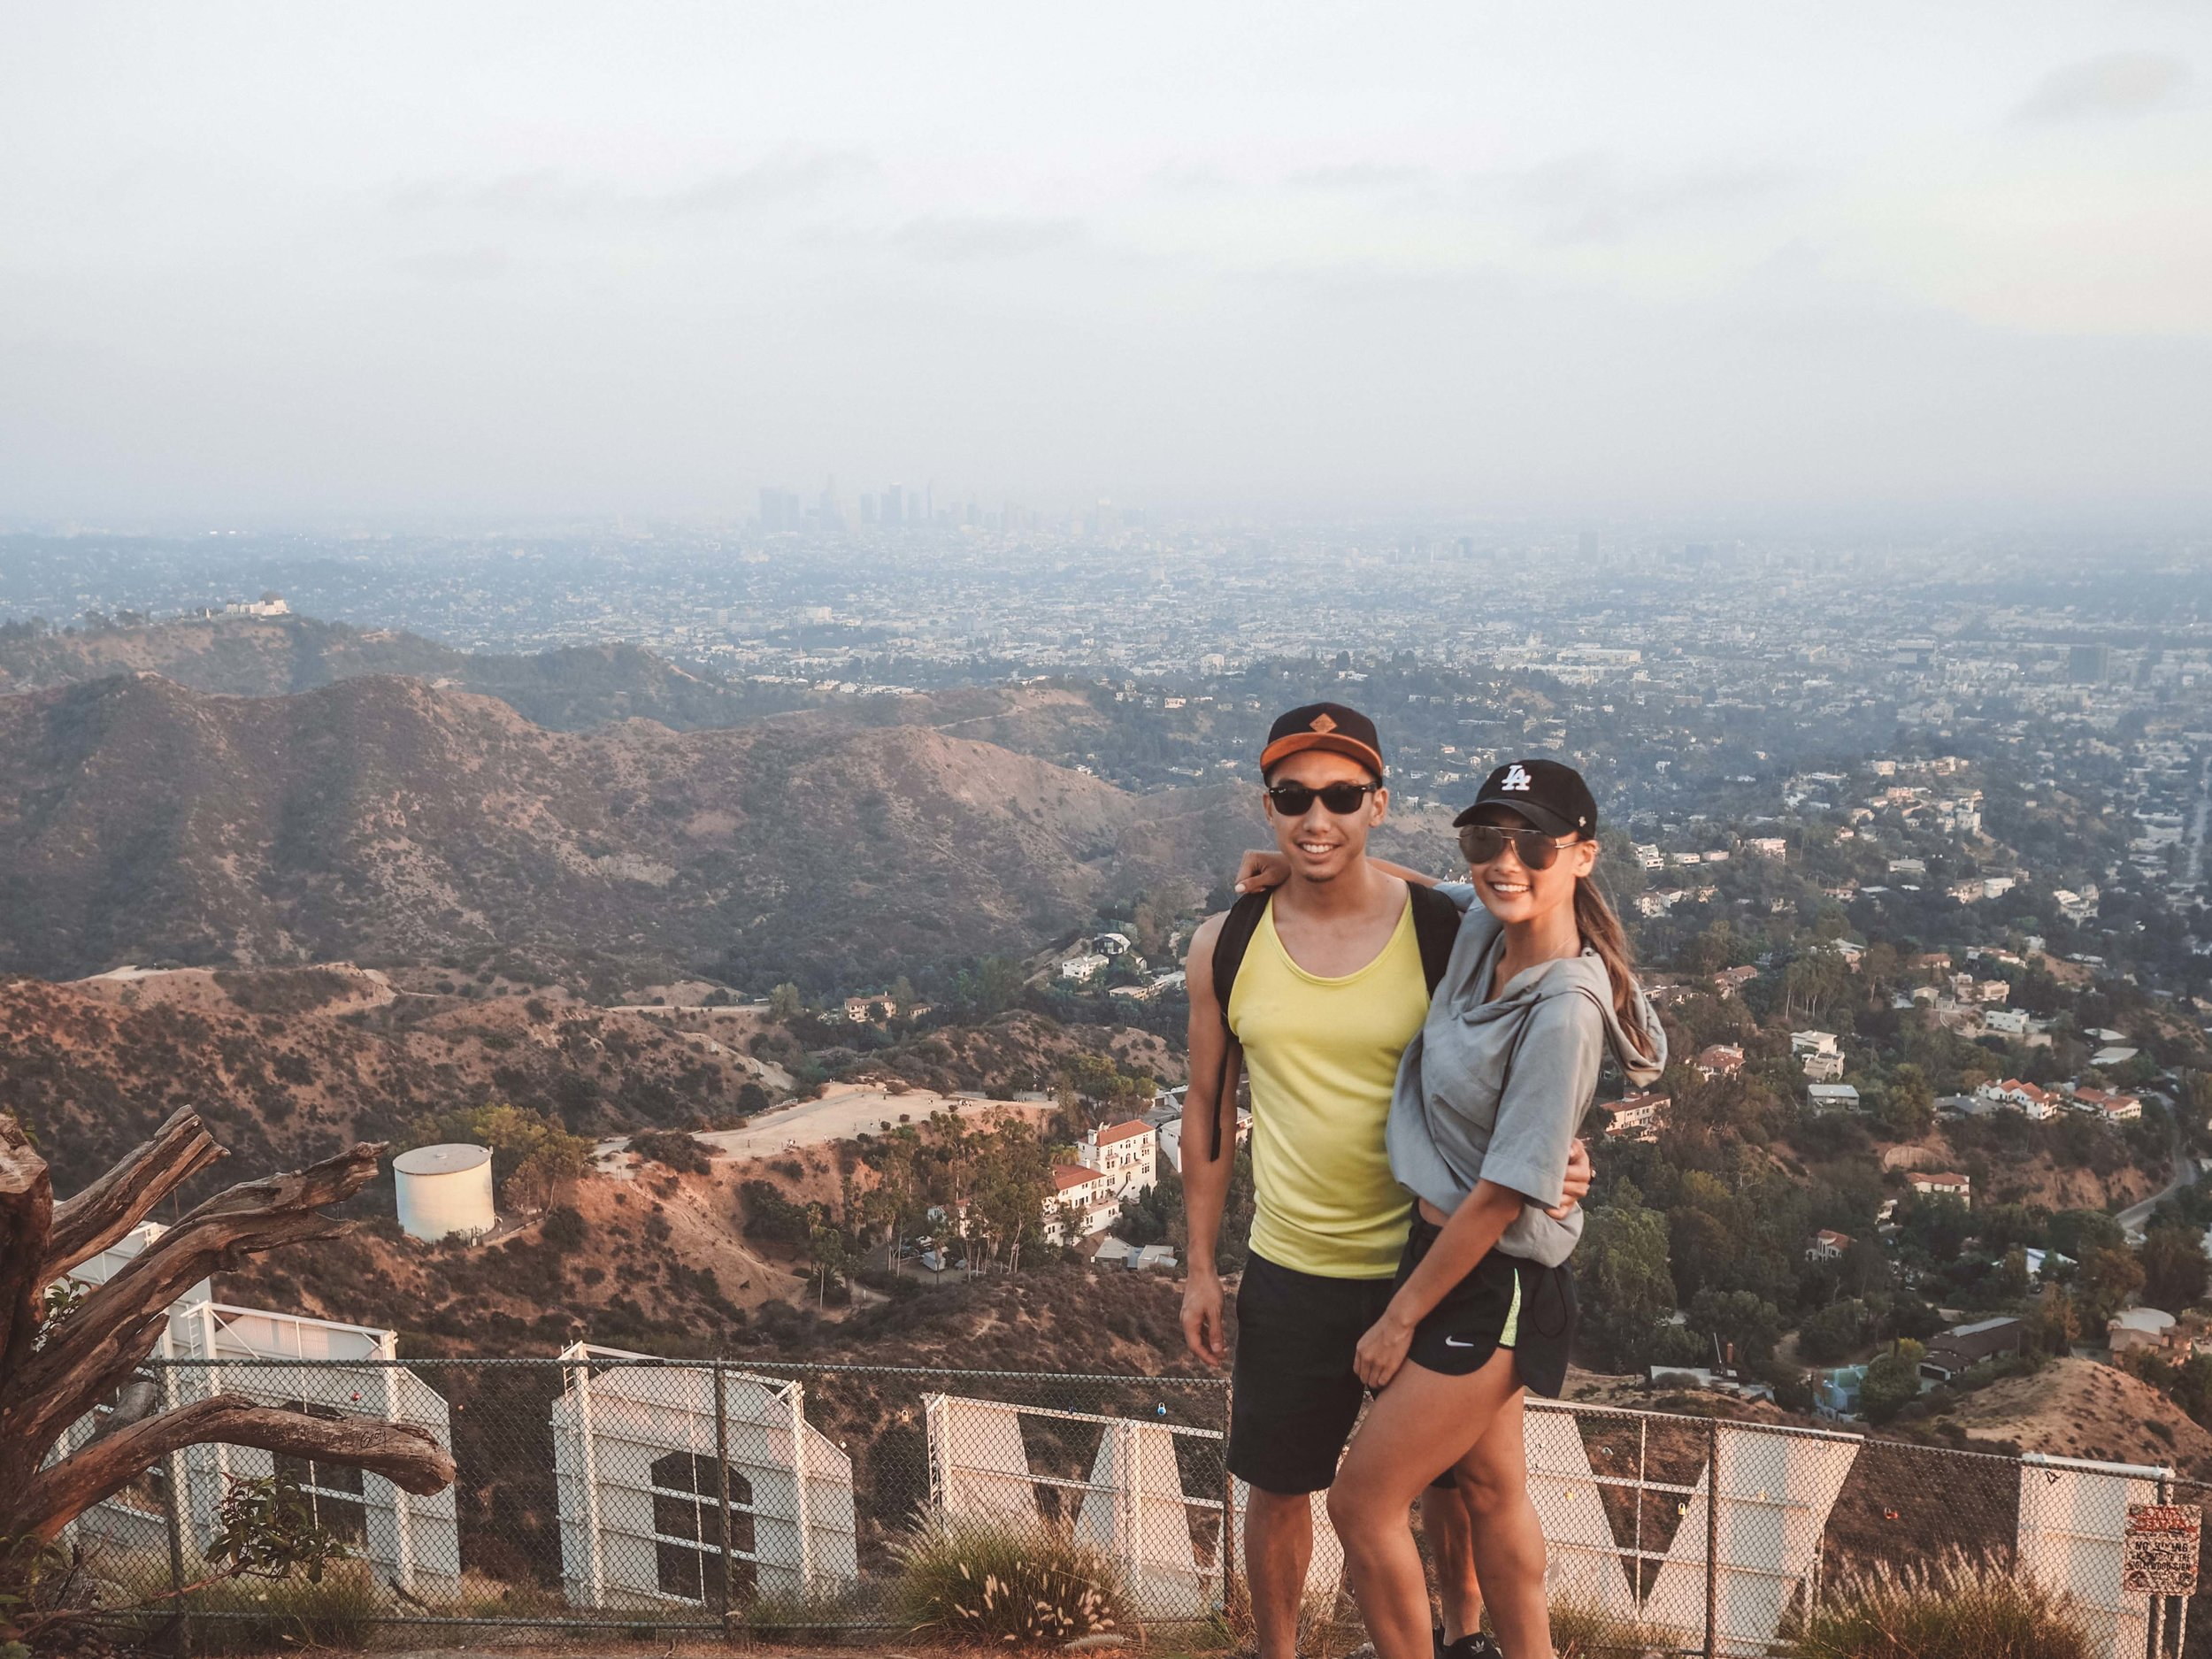 Scenic point 2: Back of the Hollywood Sign